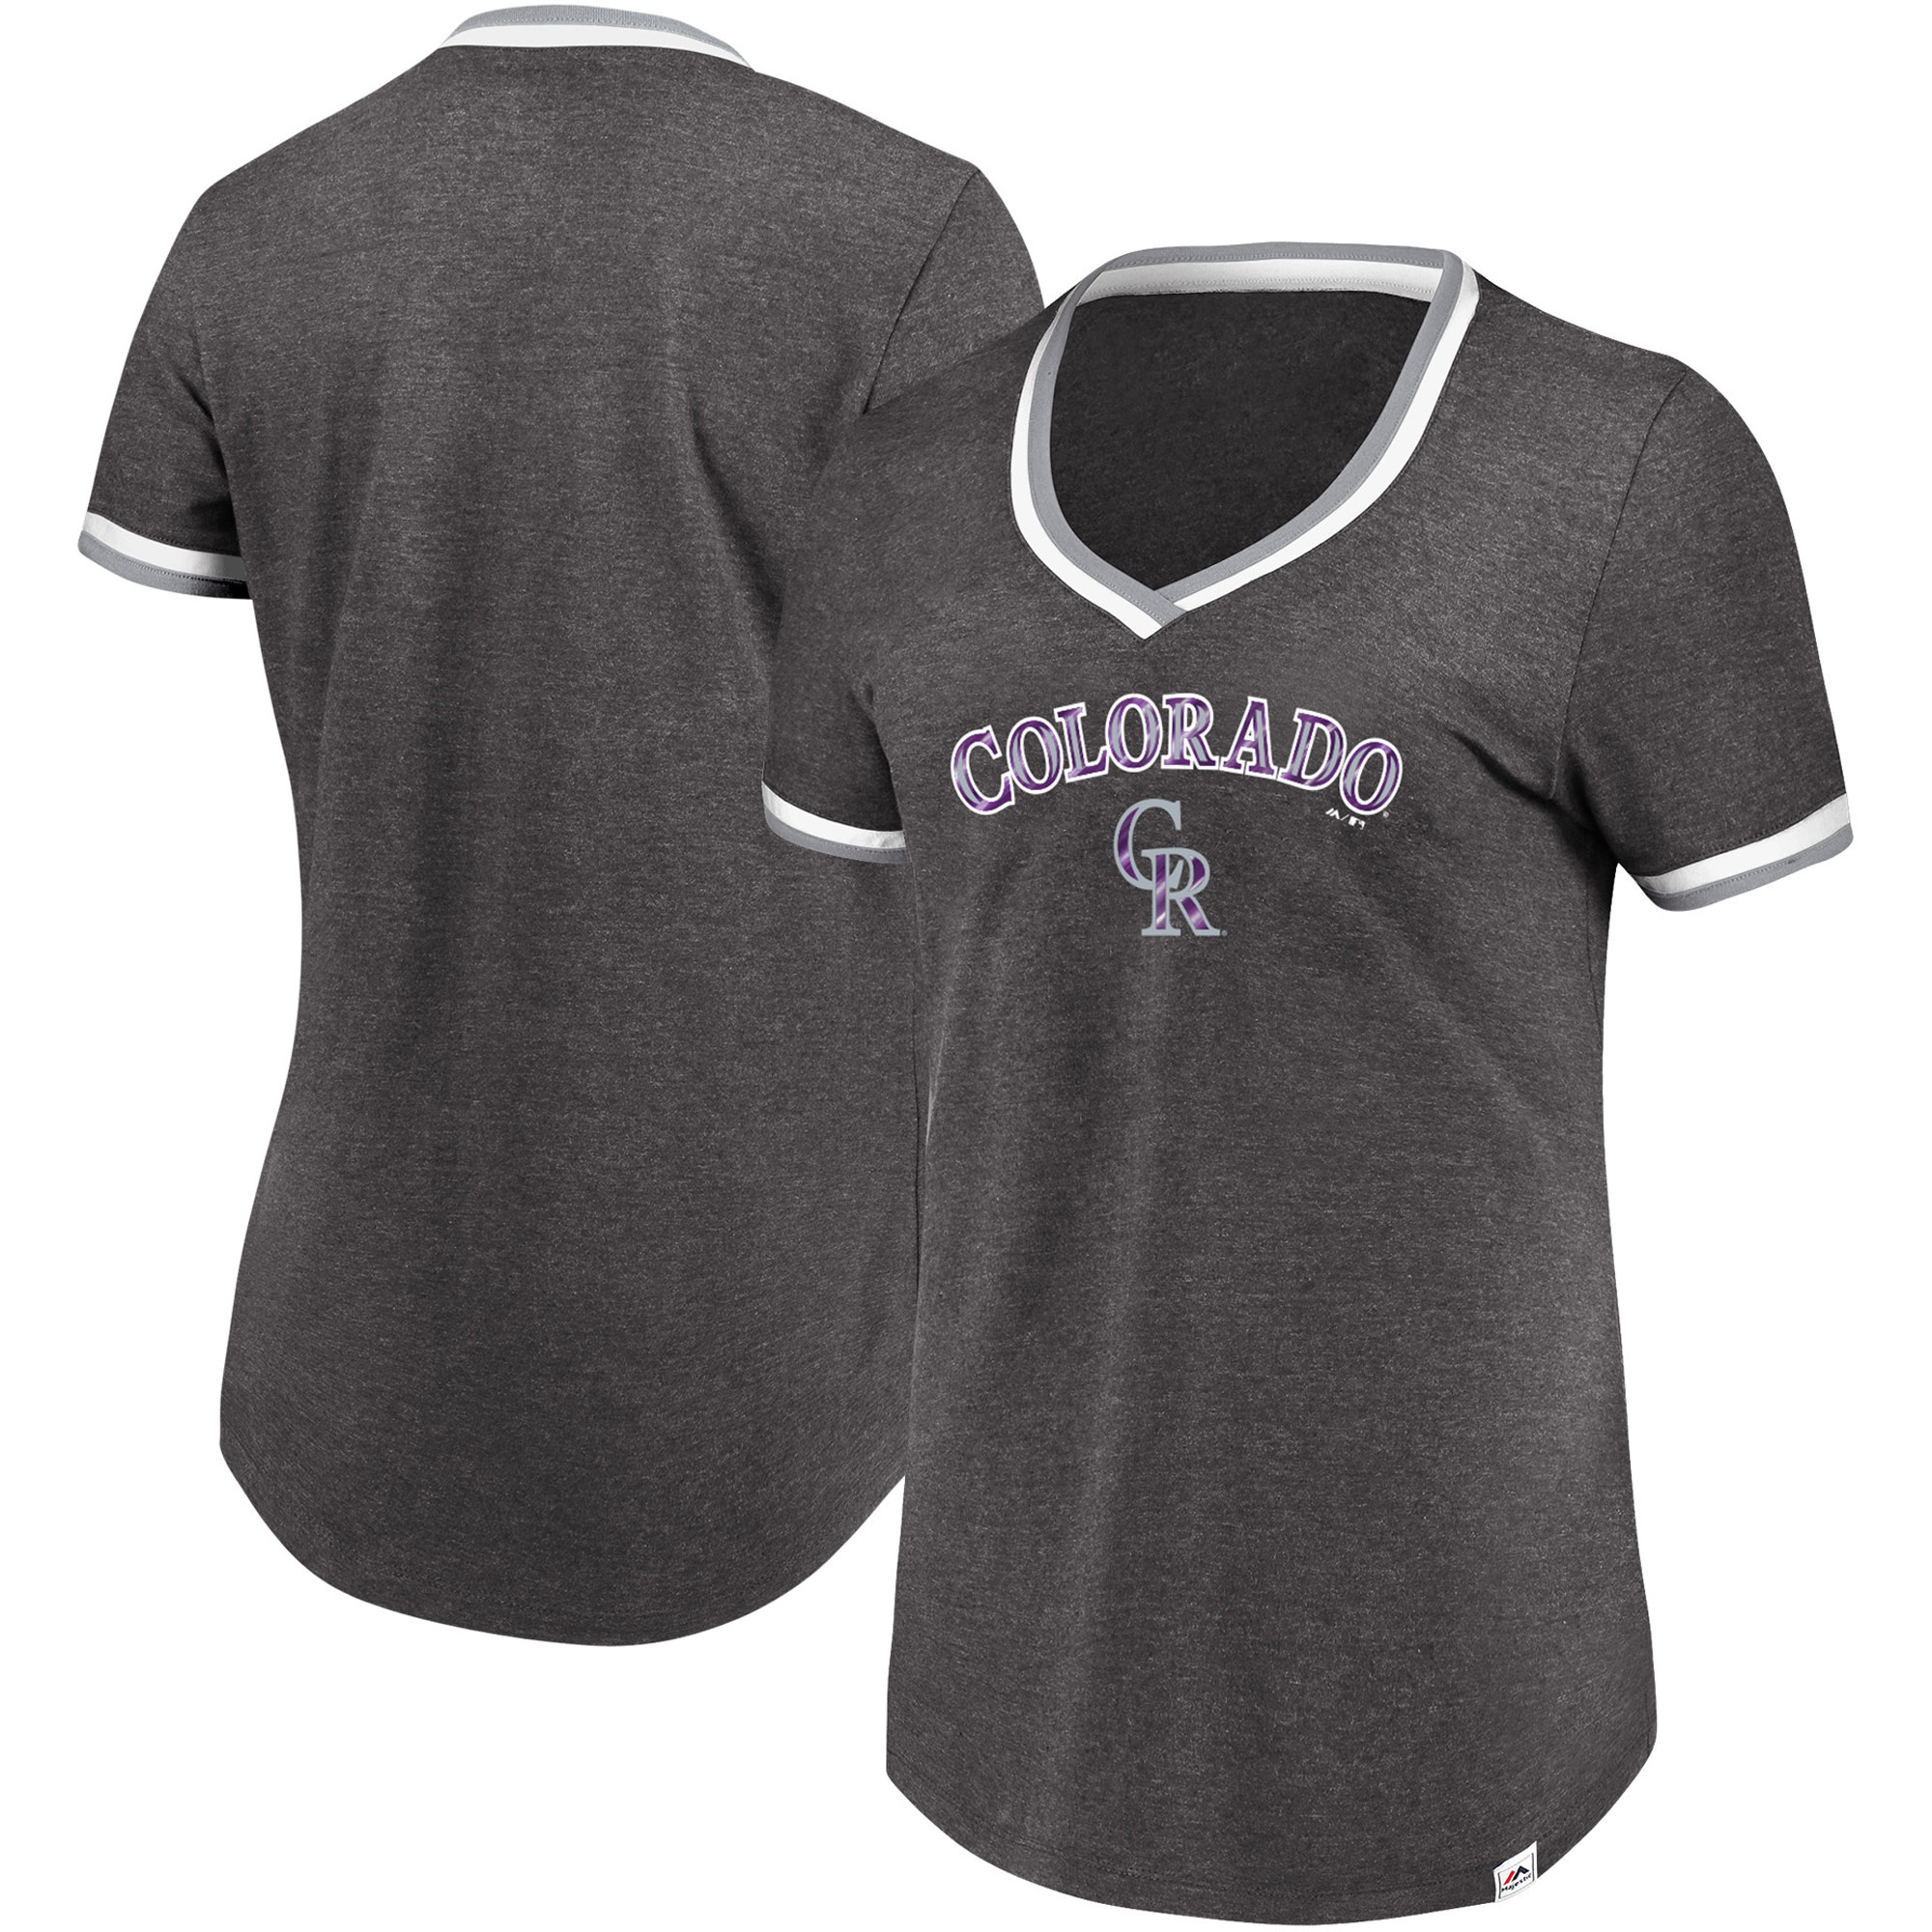 Colorado Rockies Majestic Women's Driven By Results T-Shirt - Charcoal